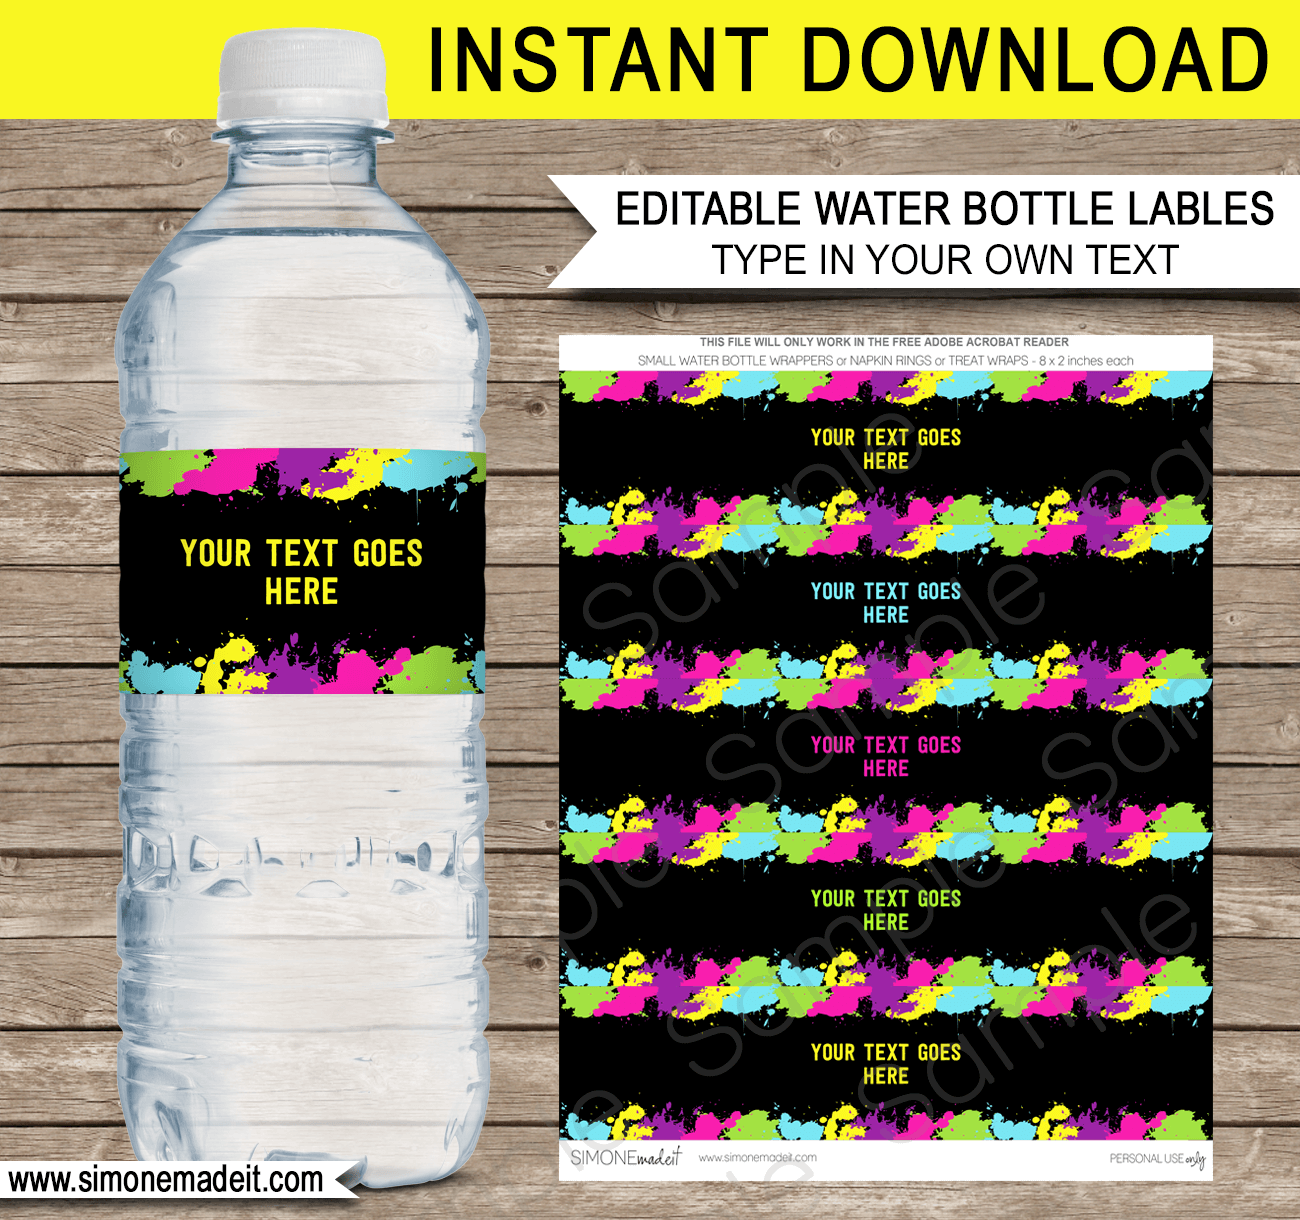 Neon Glow Party Water Bottle Labels | Neon Glow Theme Birthday Party Template | Napkin Wraps | Treat Wraps | DIY Editable & Printable Template | INSTANT DOWNLOAD via simonemadeit.com